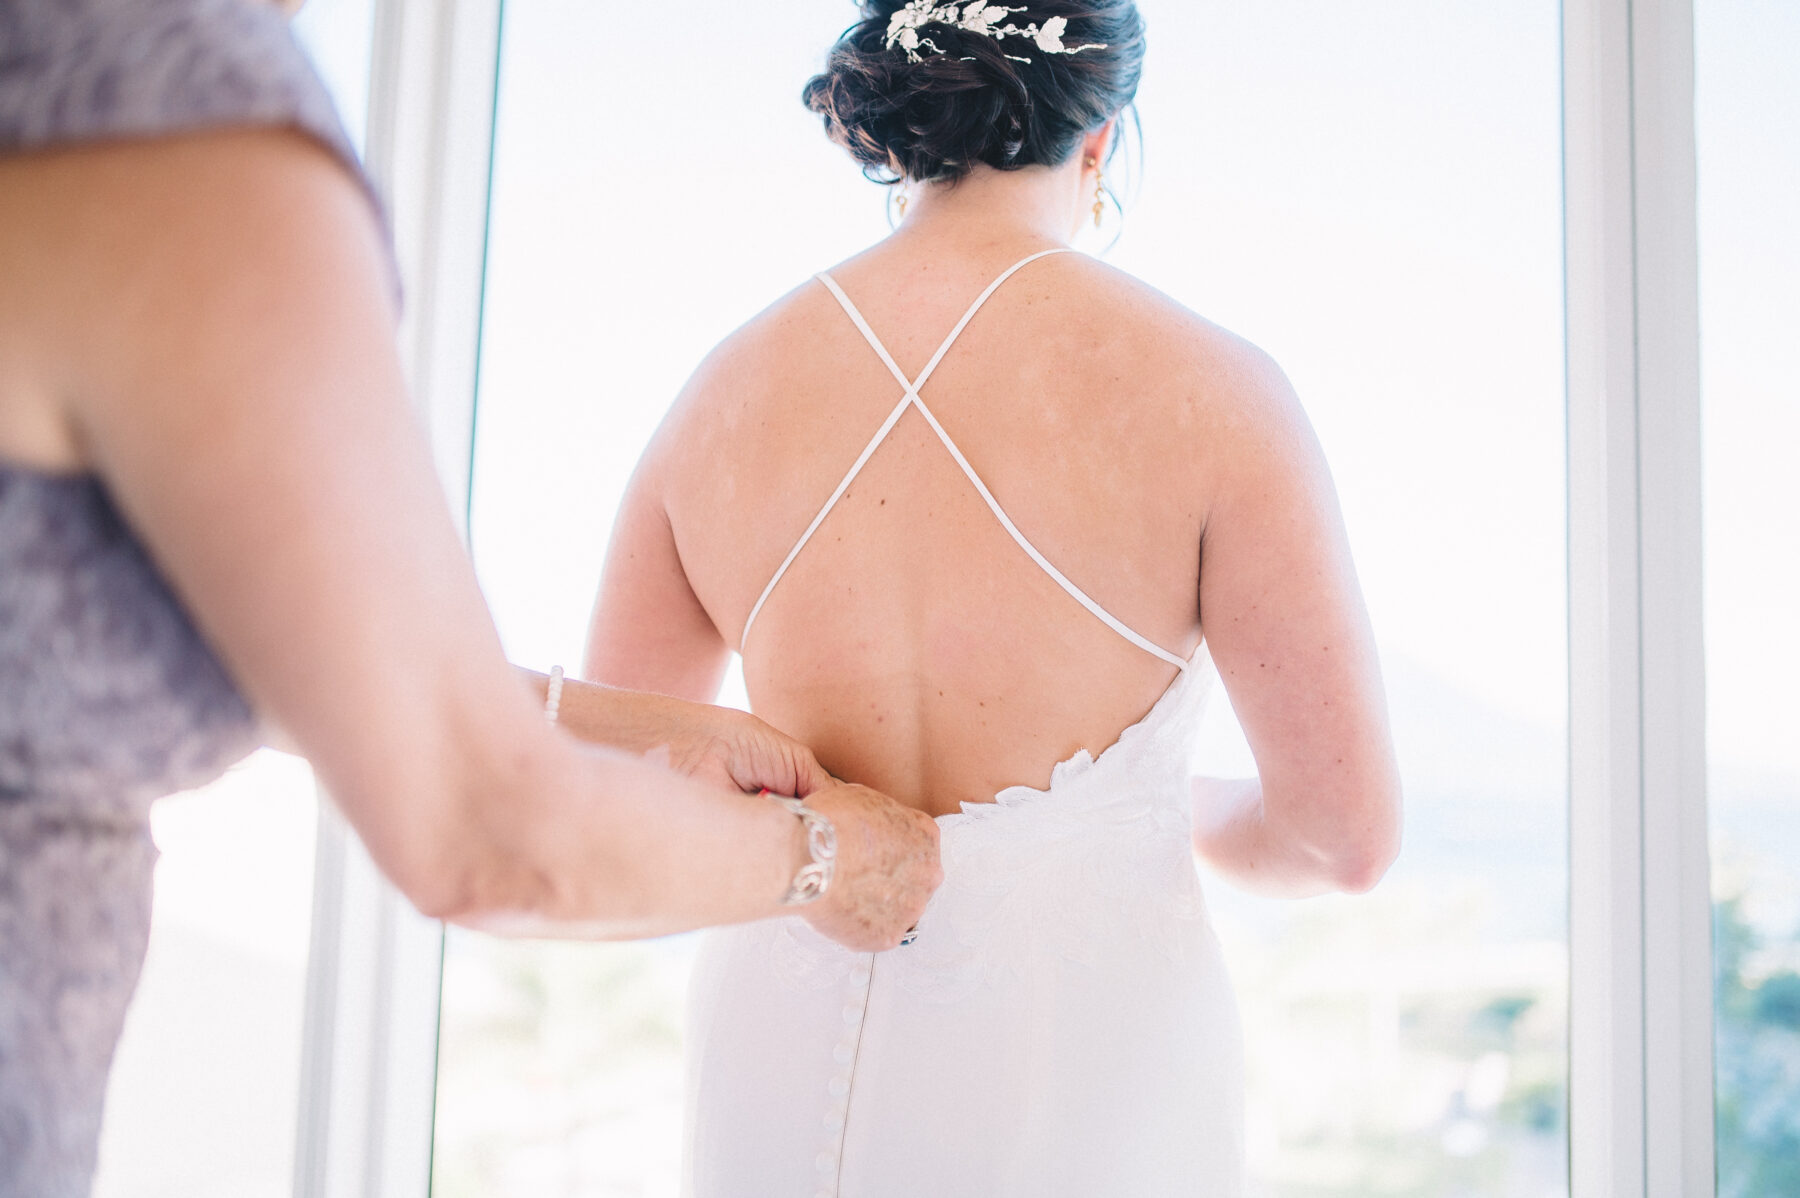 Bride getting ready in wedding dress: Intimate Caribbean Wedding by Details Nashville featured on Nashville Bride Guide